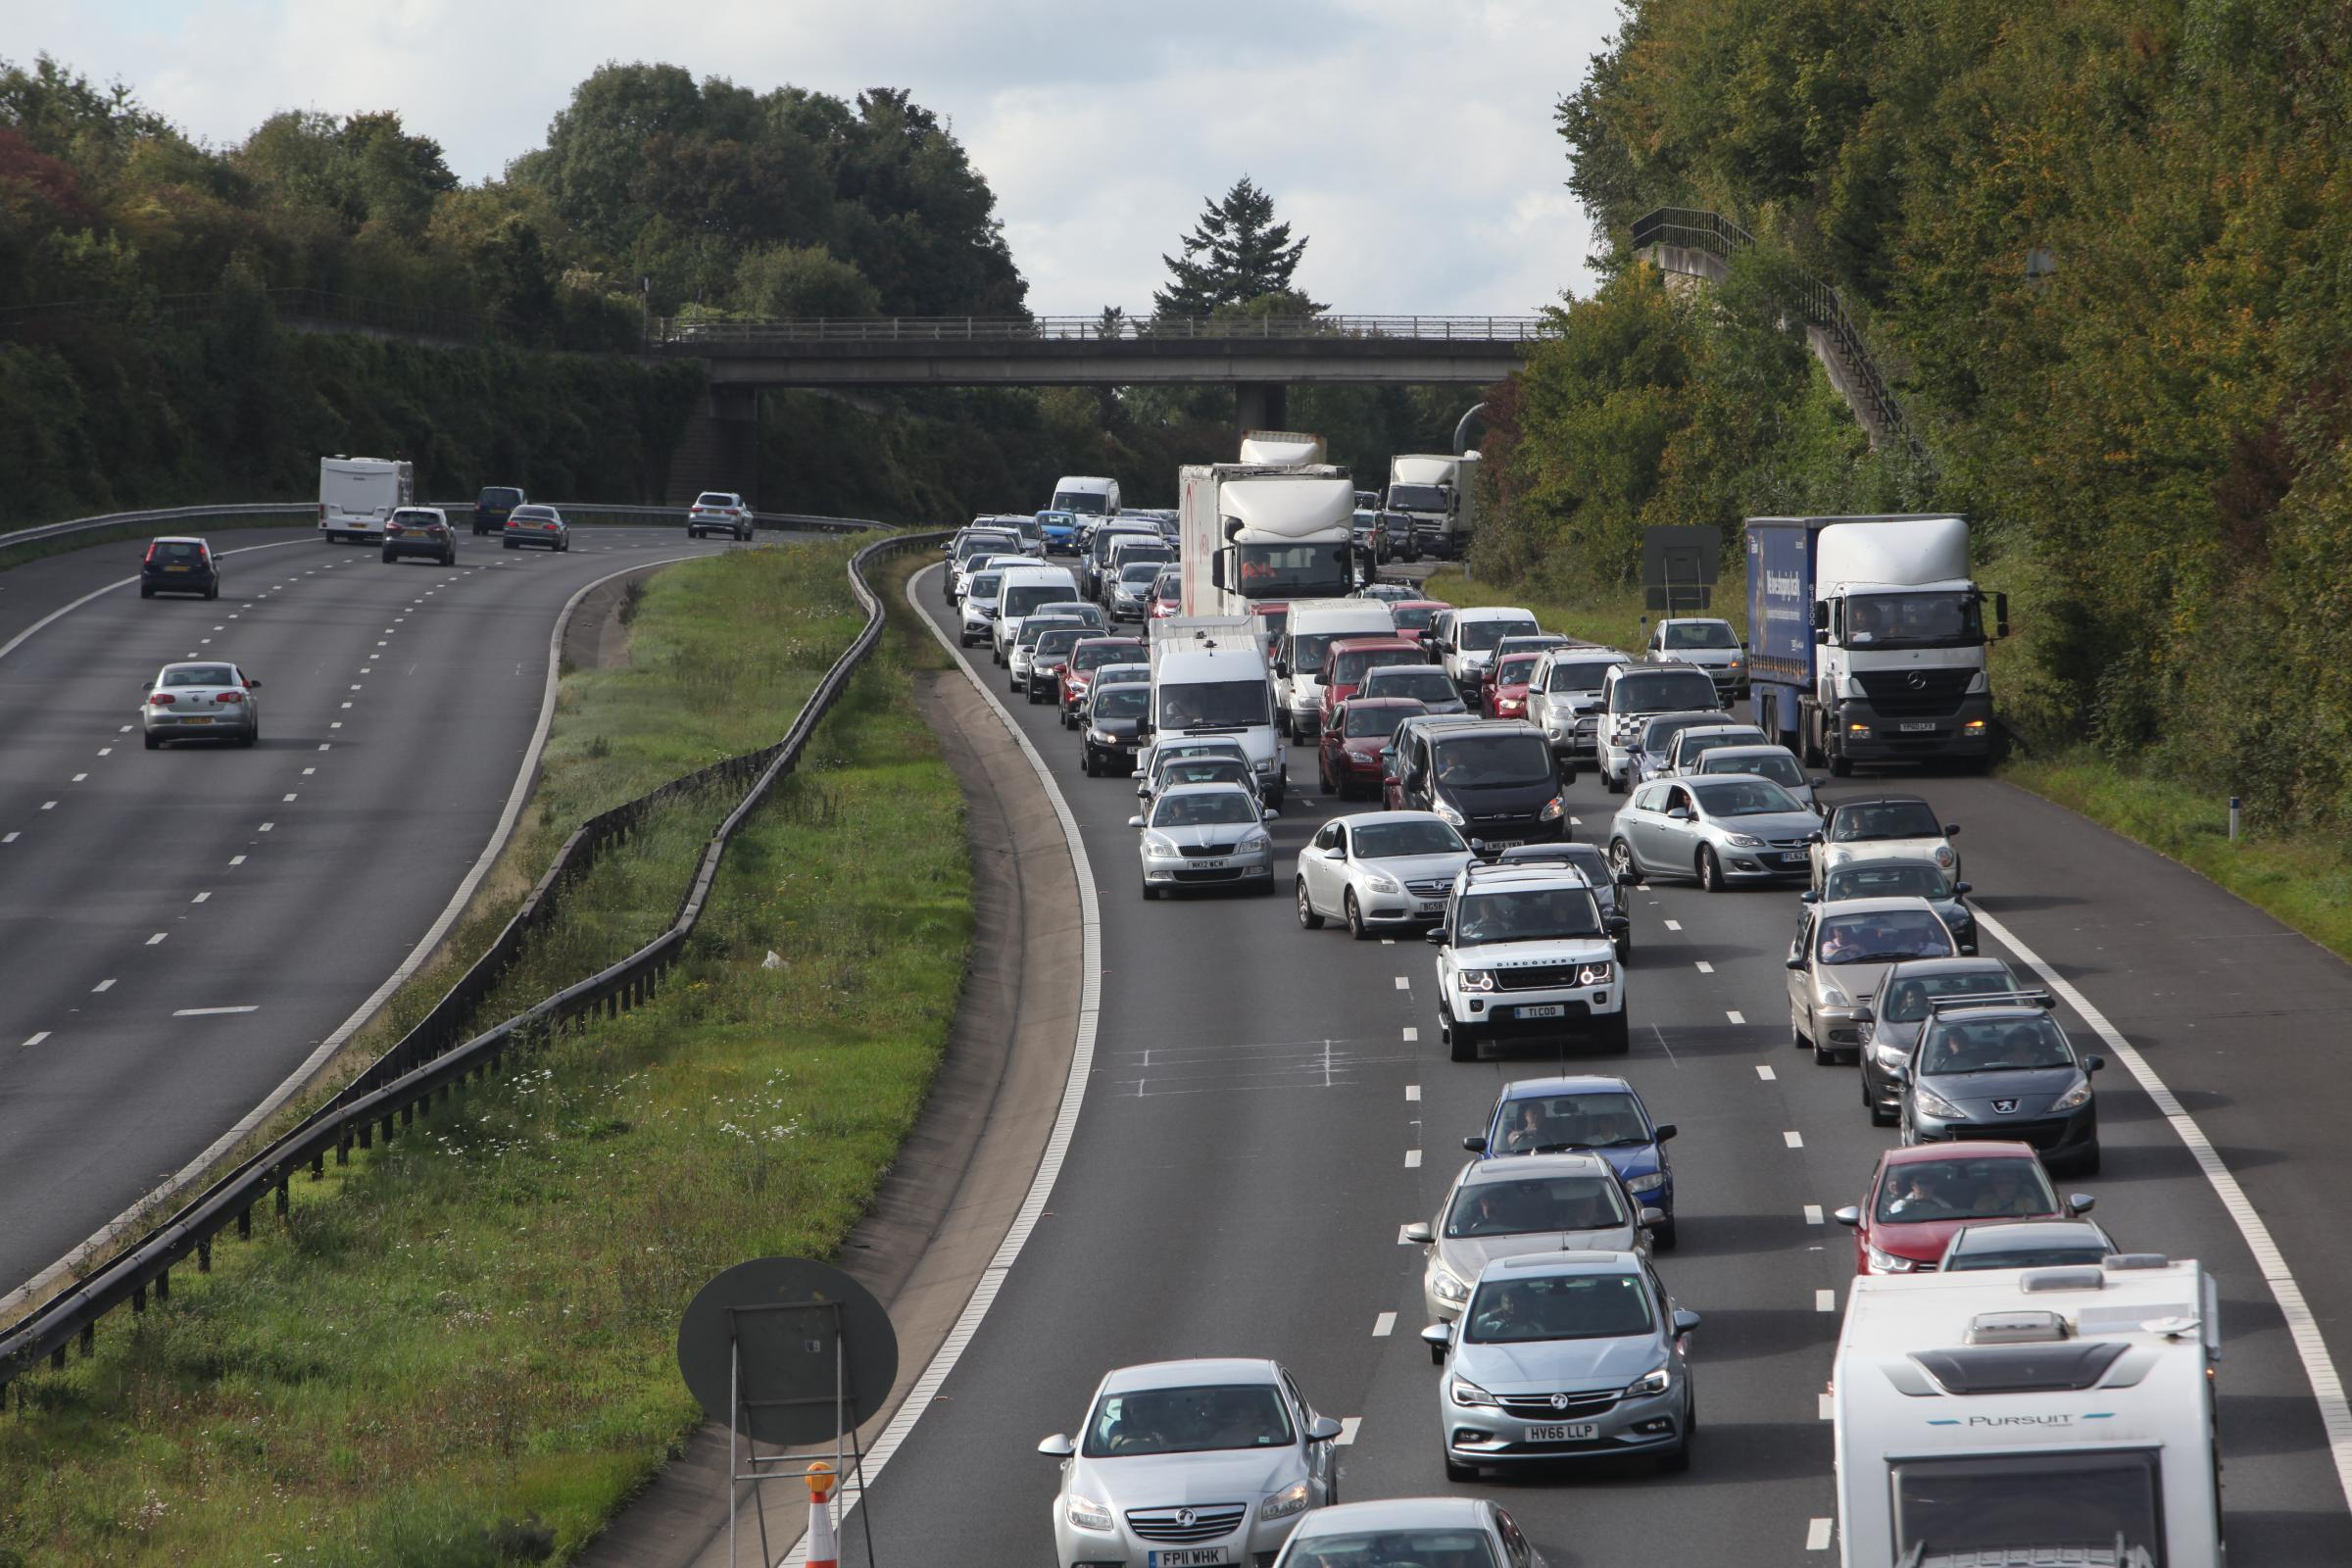 Delays on M3 after vehicle blocks lane